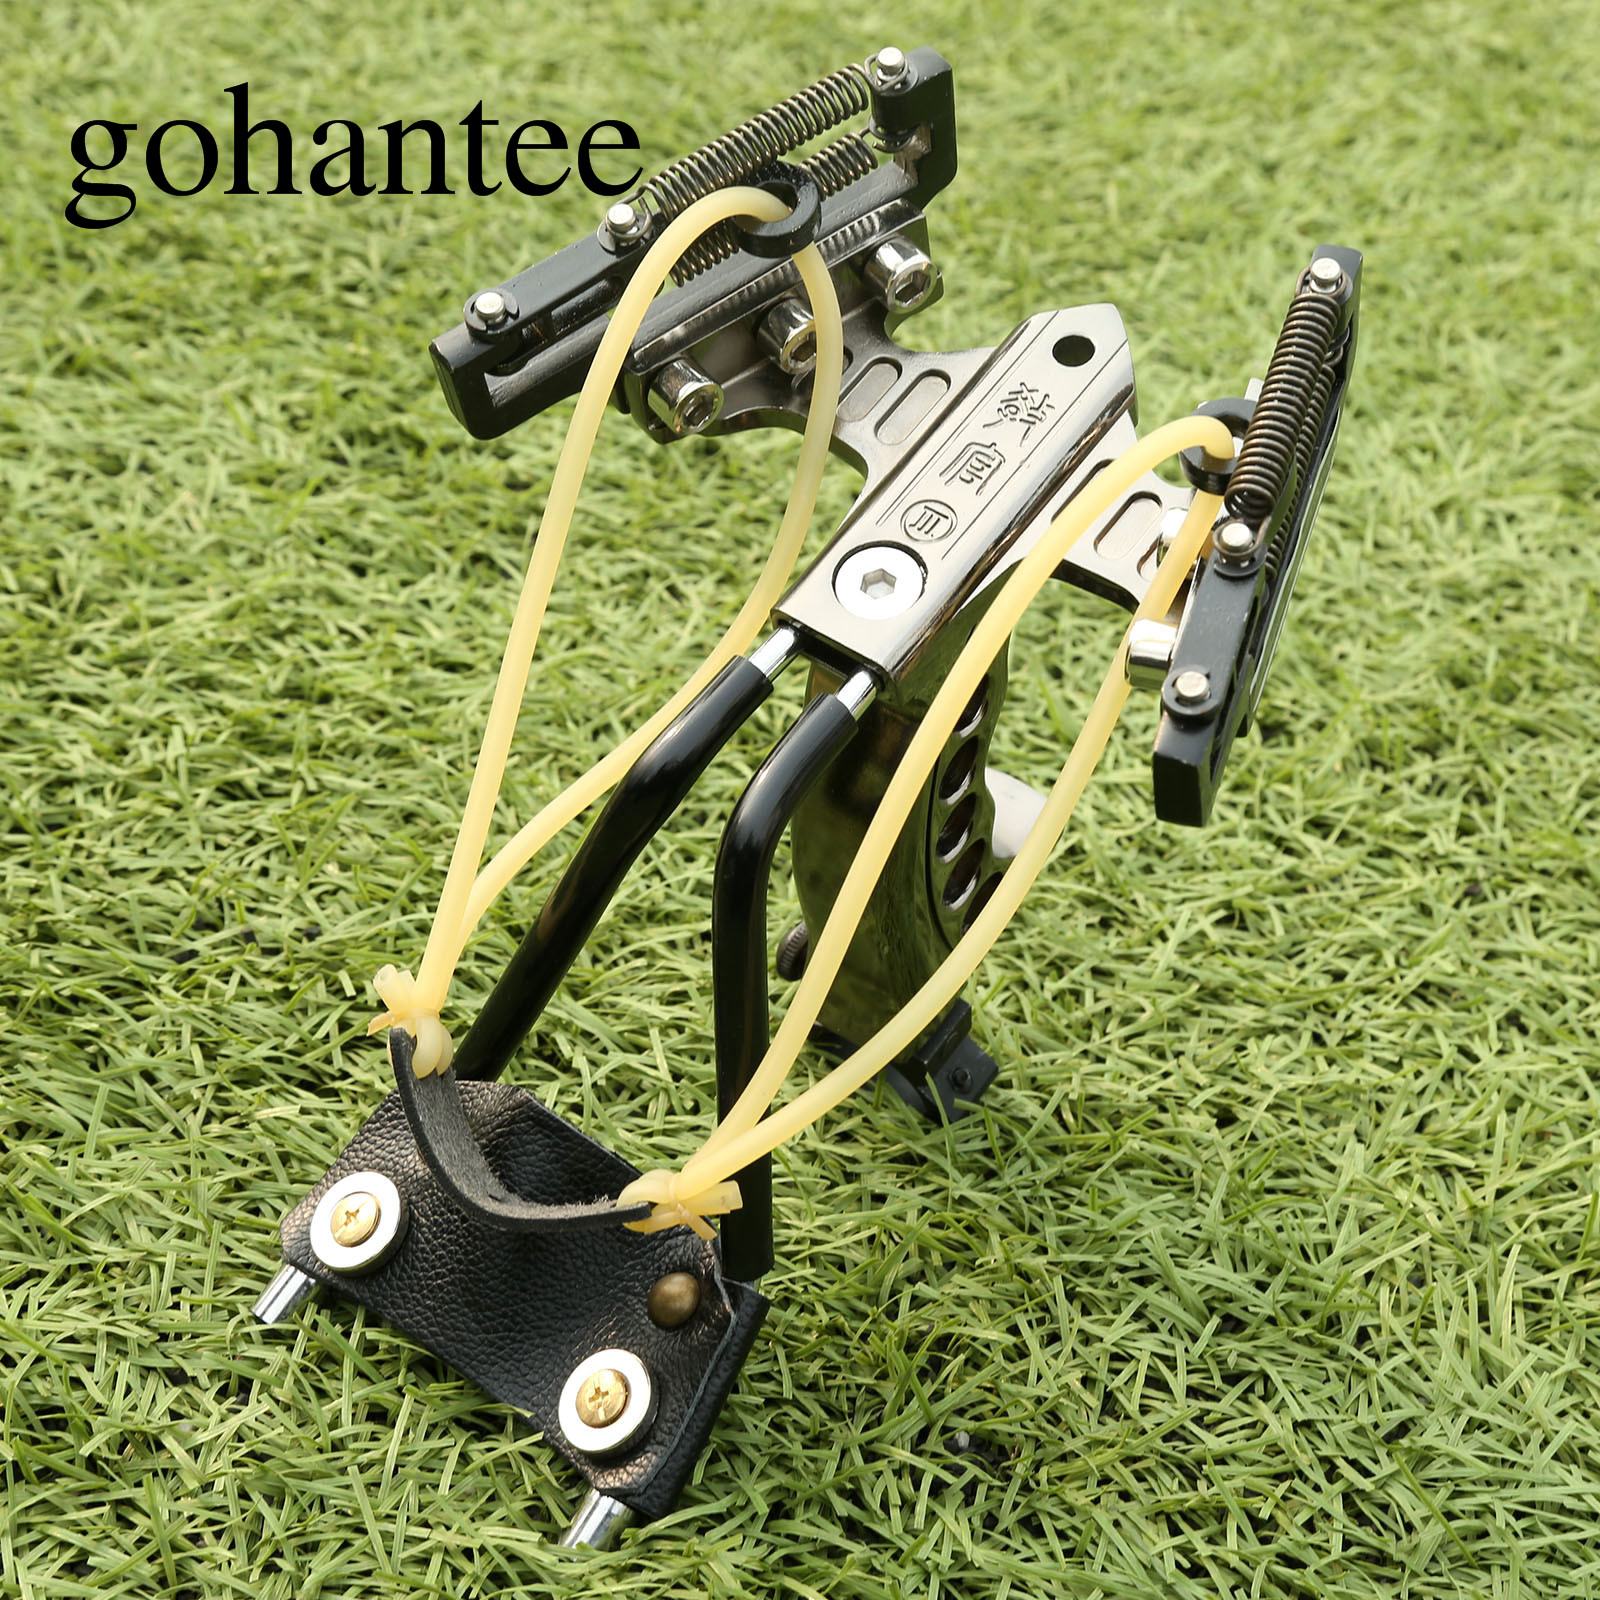 gohantee Tactical Heavy Duty Stainless Steel Slingshot with 4 Spring Wrist Brace Sling Shots Outdoor Hunting Slingshots Catapult раннее развитие умница мир на ладошке 1  живой океан